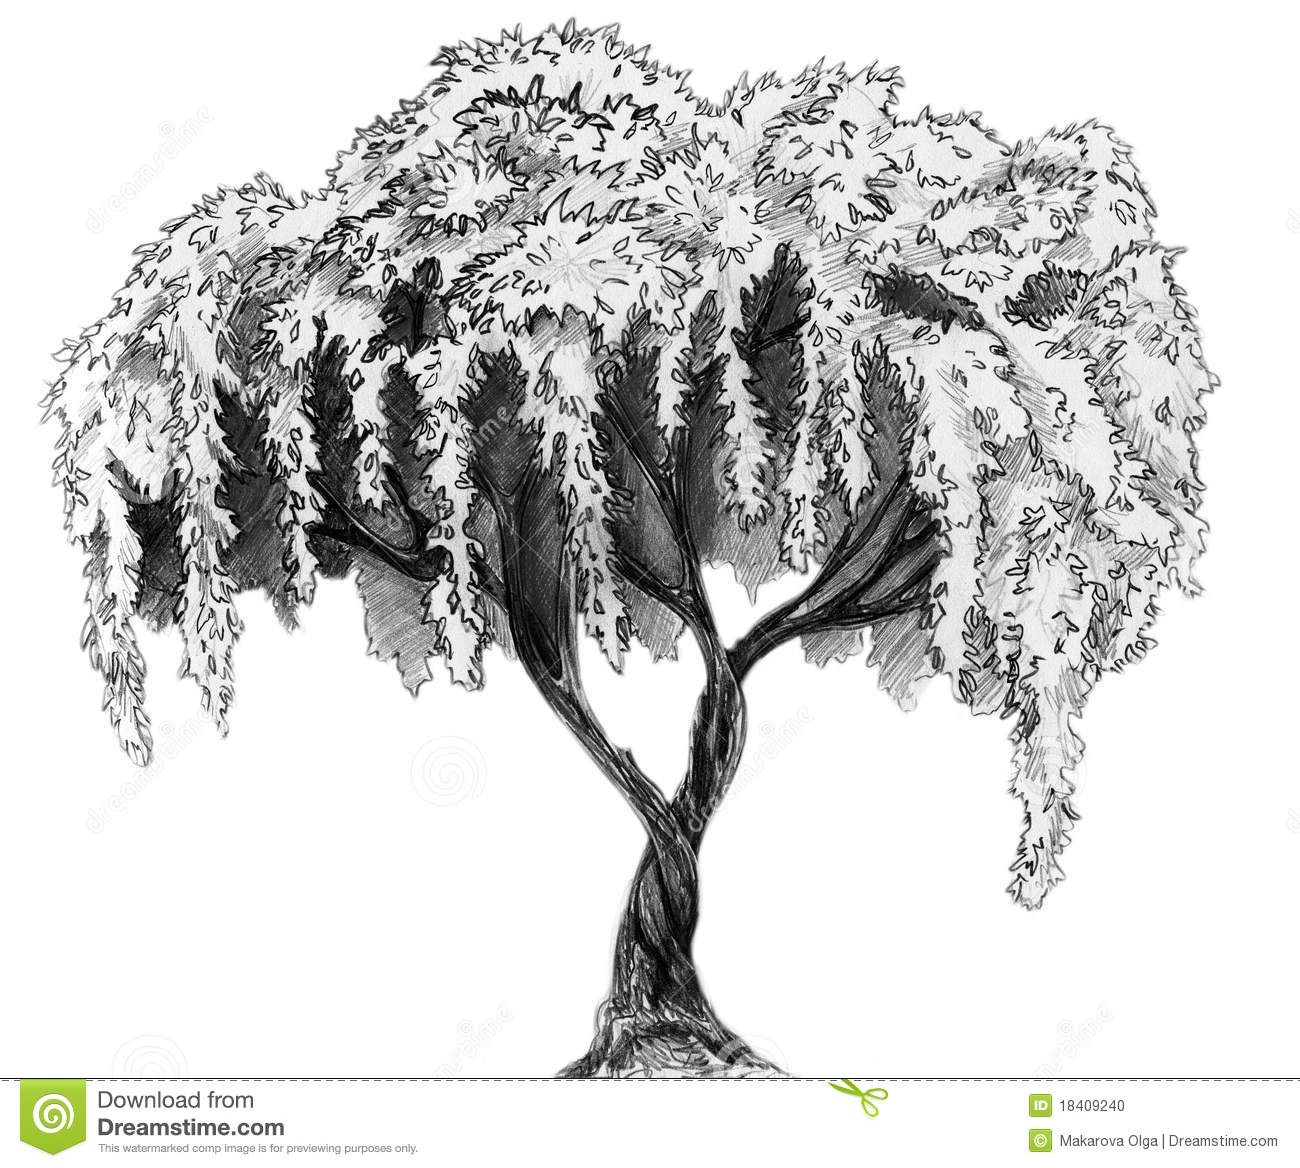 Uncategorized Cherry Blossom Tree Sketch sakura tree pencil sketch stock illustration image 18409240 sketch